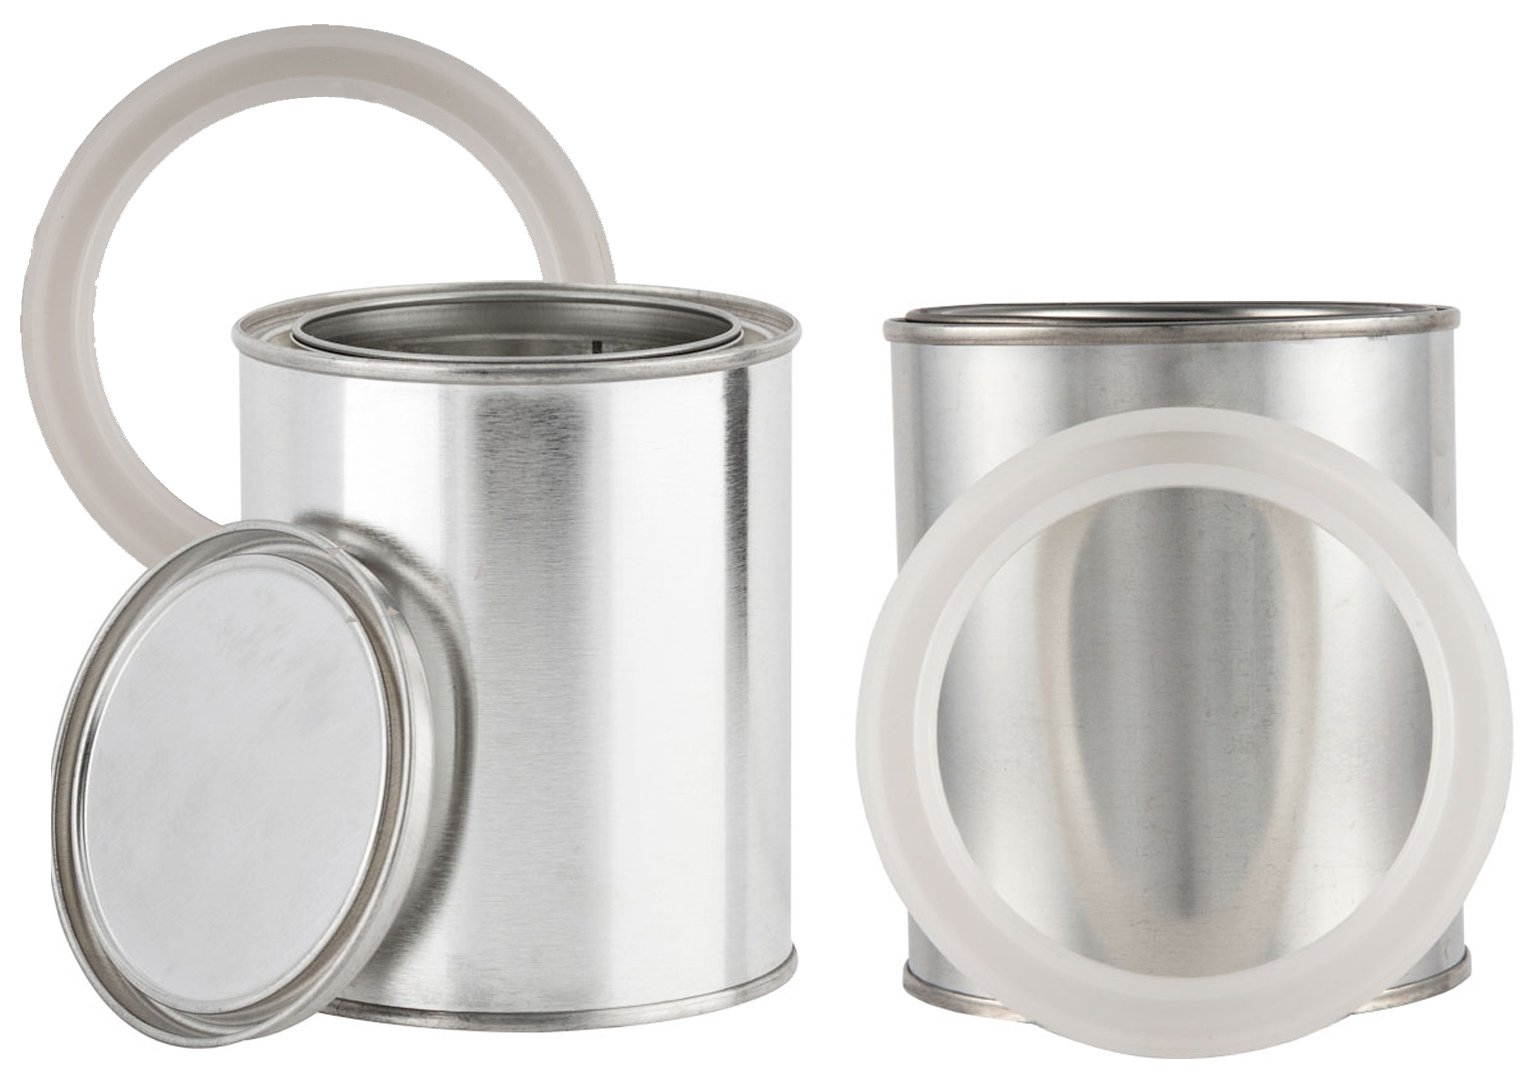 Seal Paint Can with Lids (2 Pack) Empty Quart Sized Metal Storage Empty Cans with Overseal Ring Securing Tops Container Set Unlined (Quart)